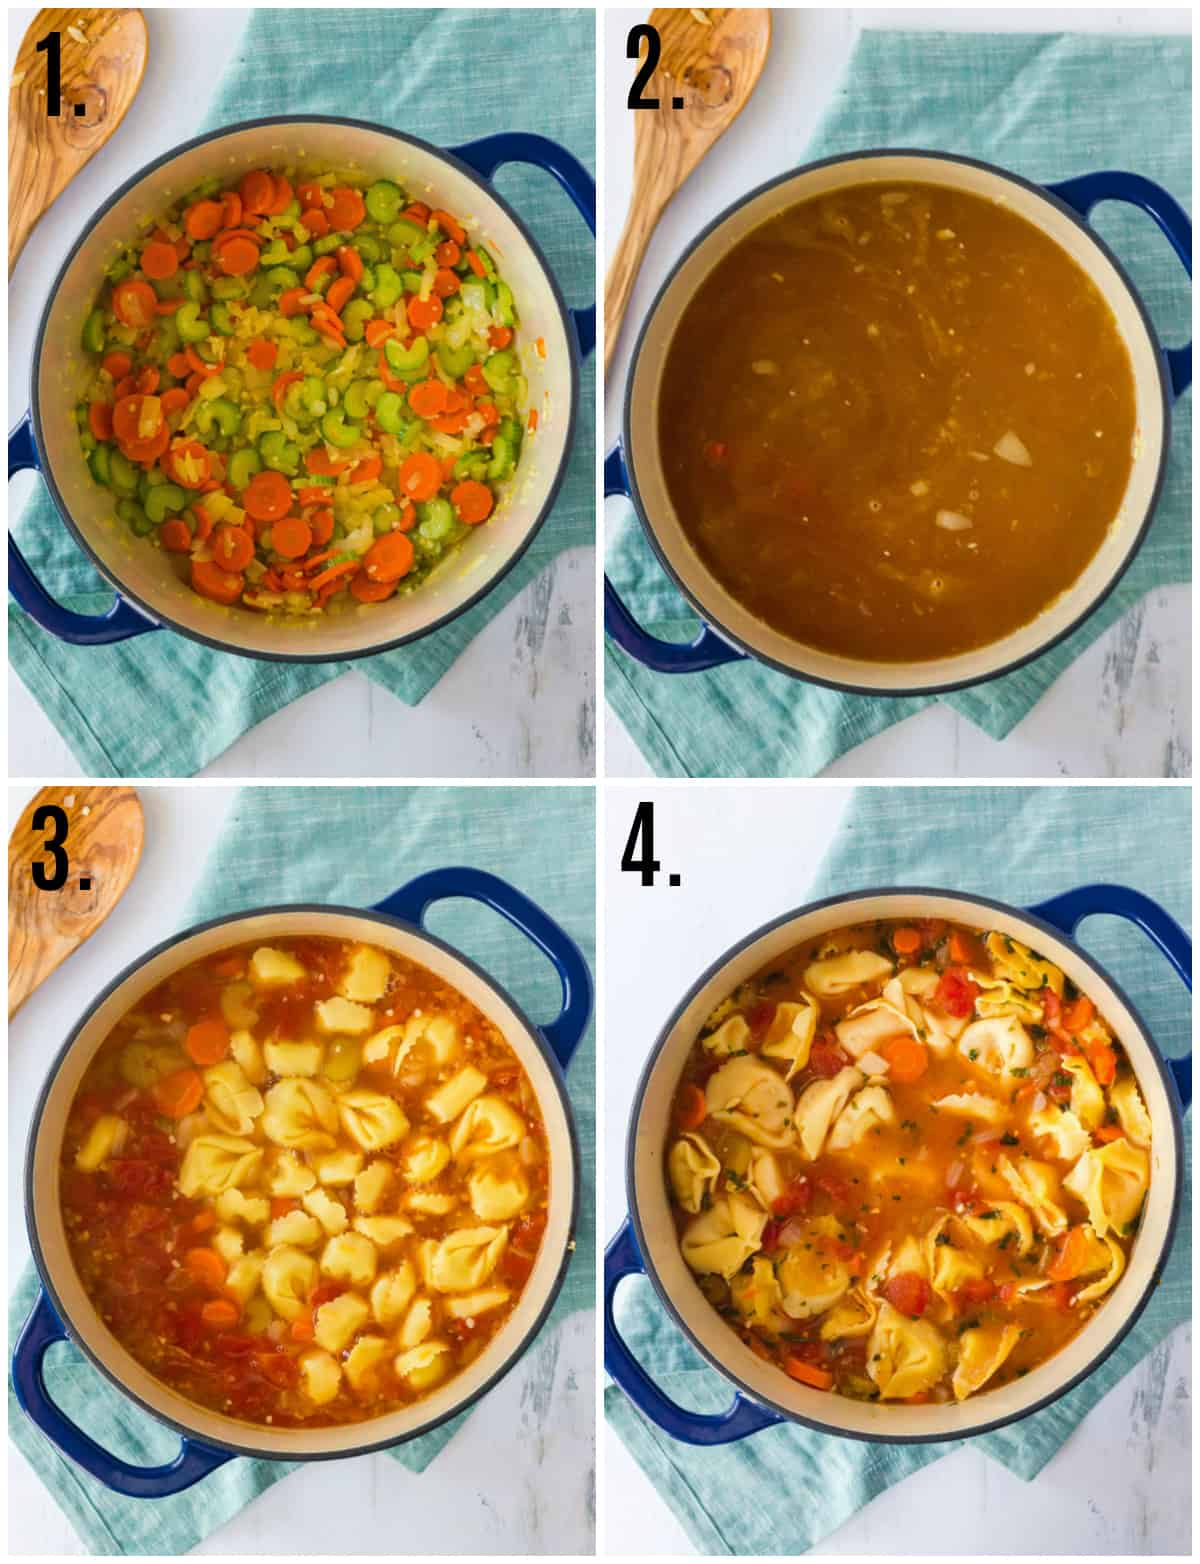 Step by step photos on how to make Tortellini Soup